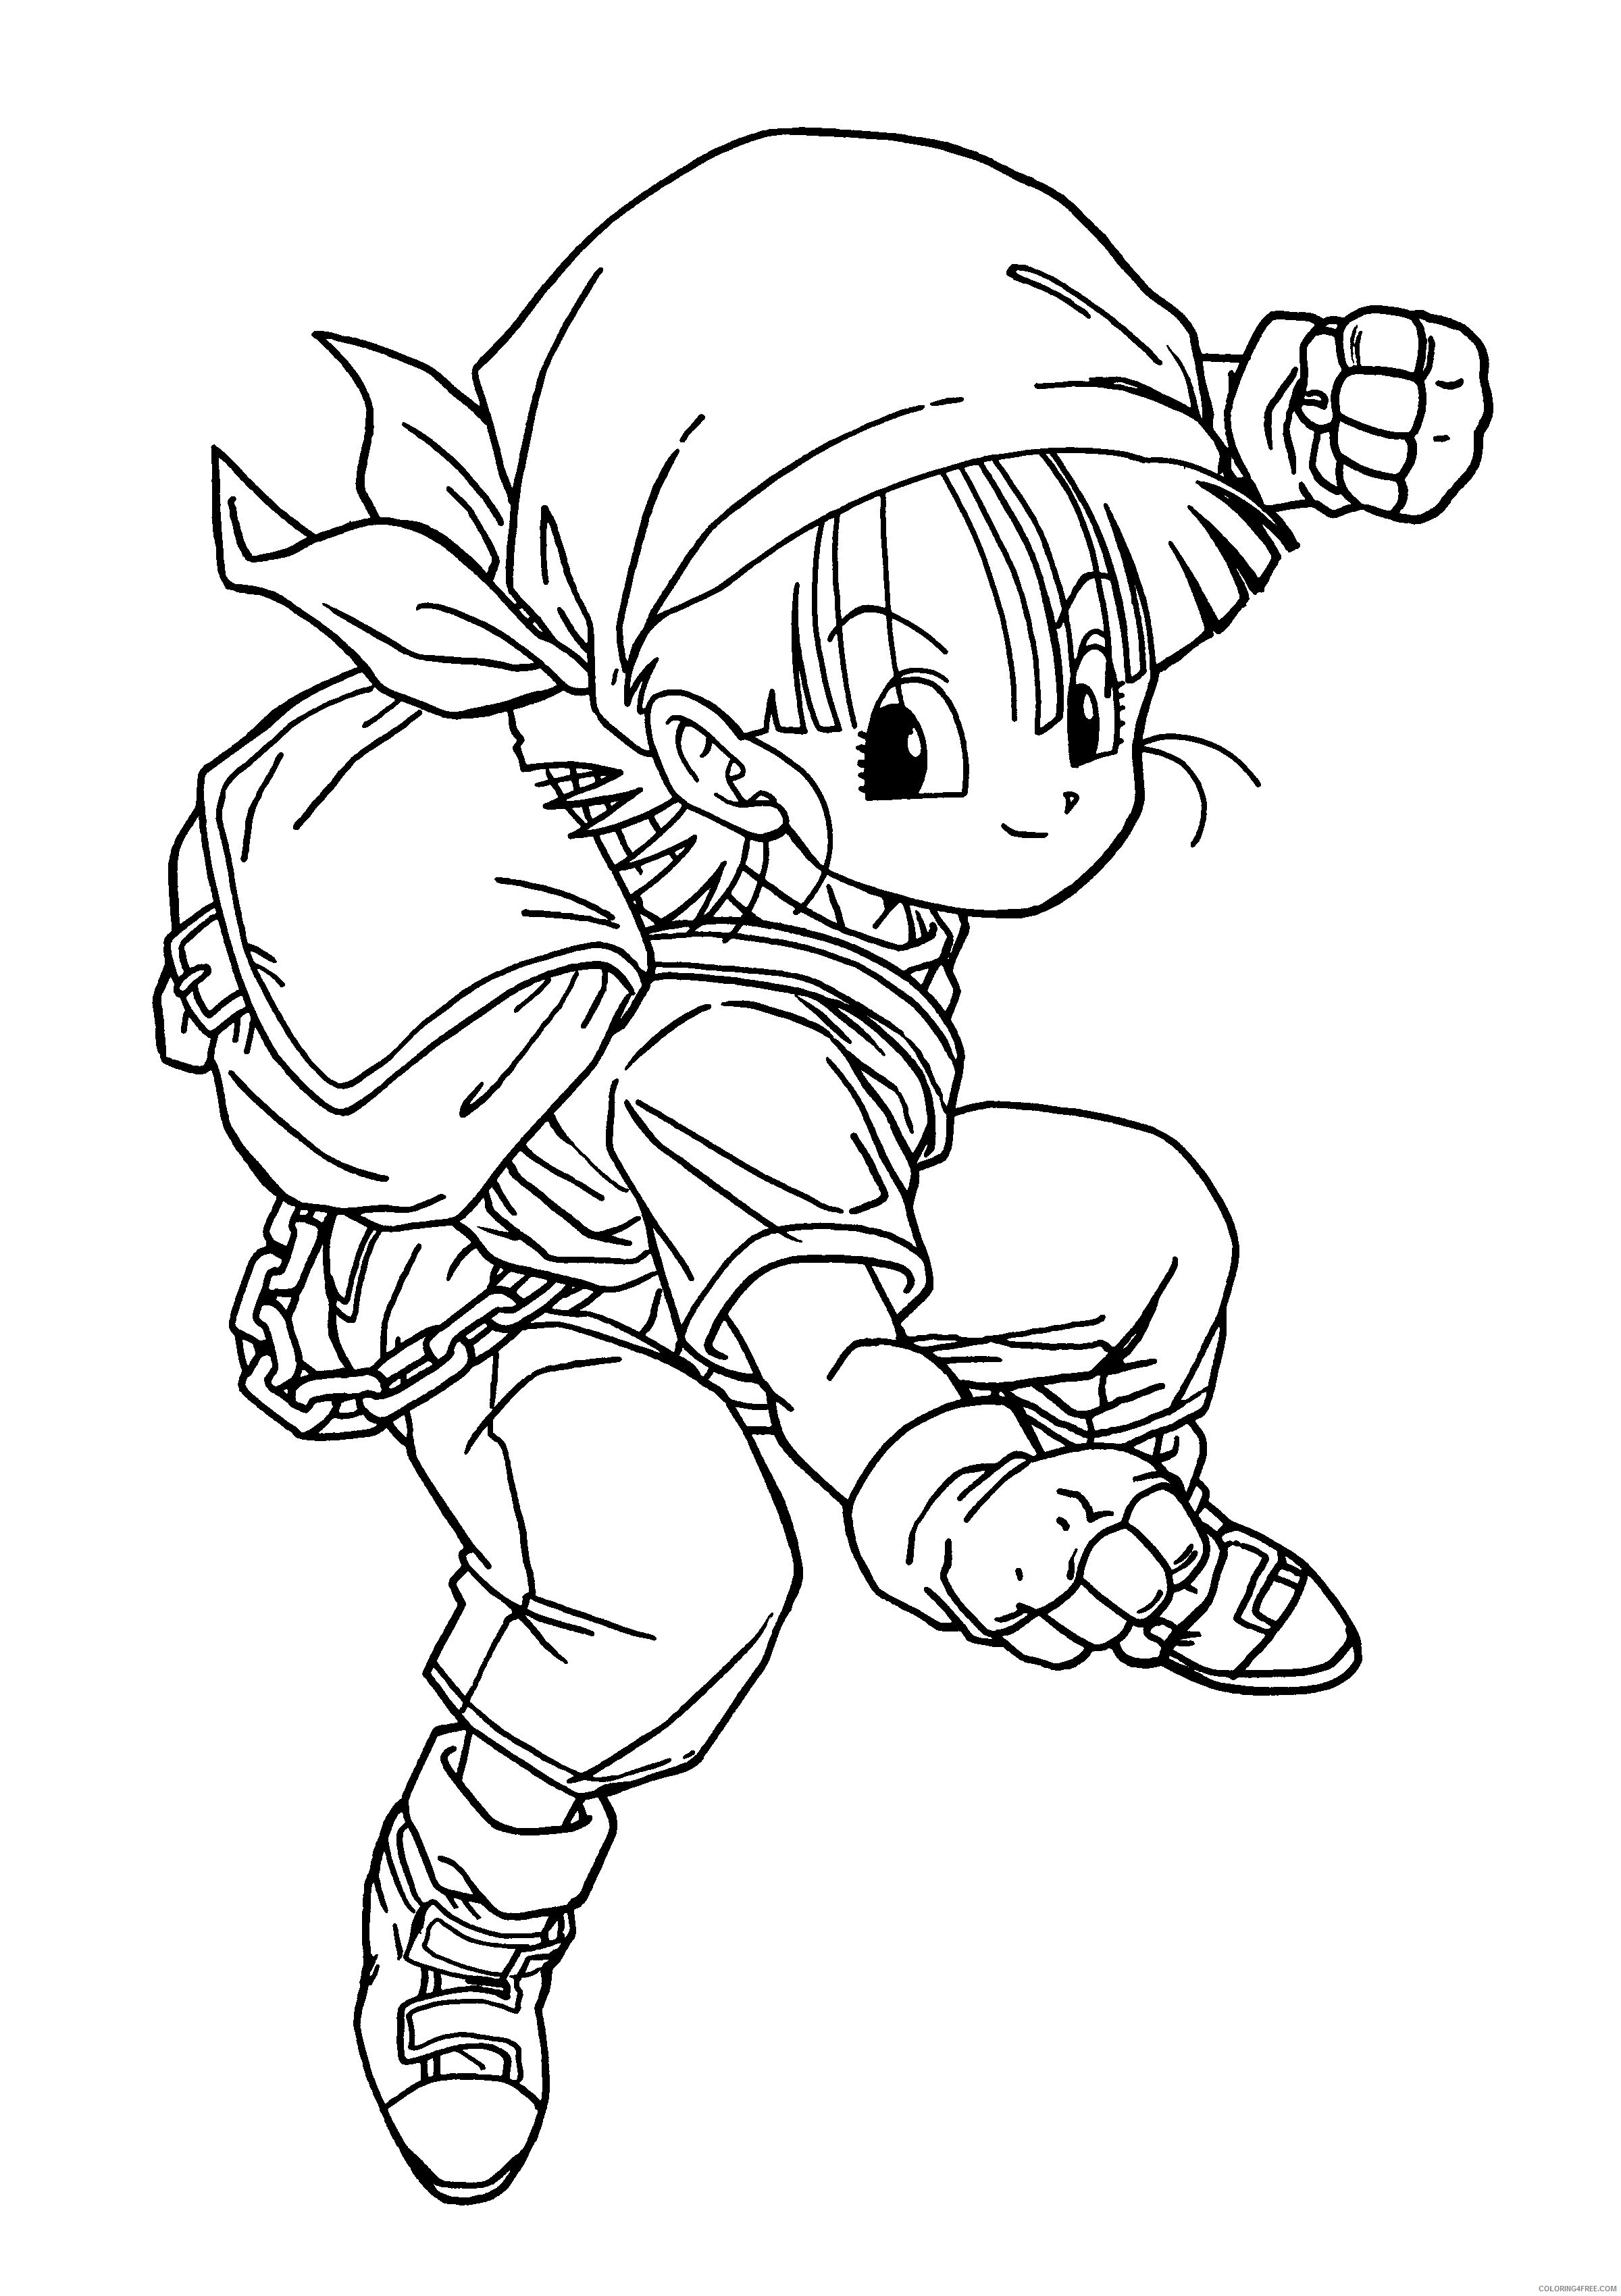 019 dragon ball z Printable Coloring4free